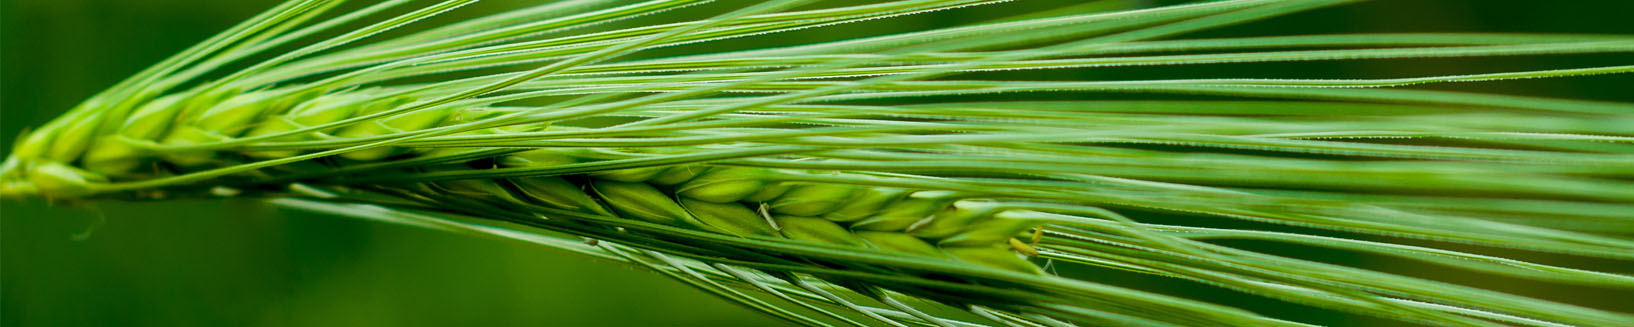 Barley- internal header.jpg